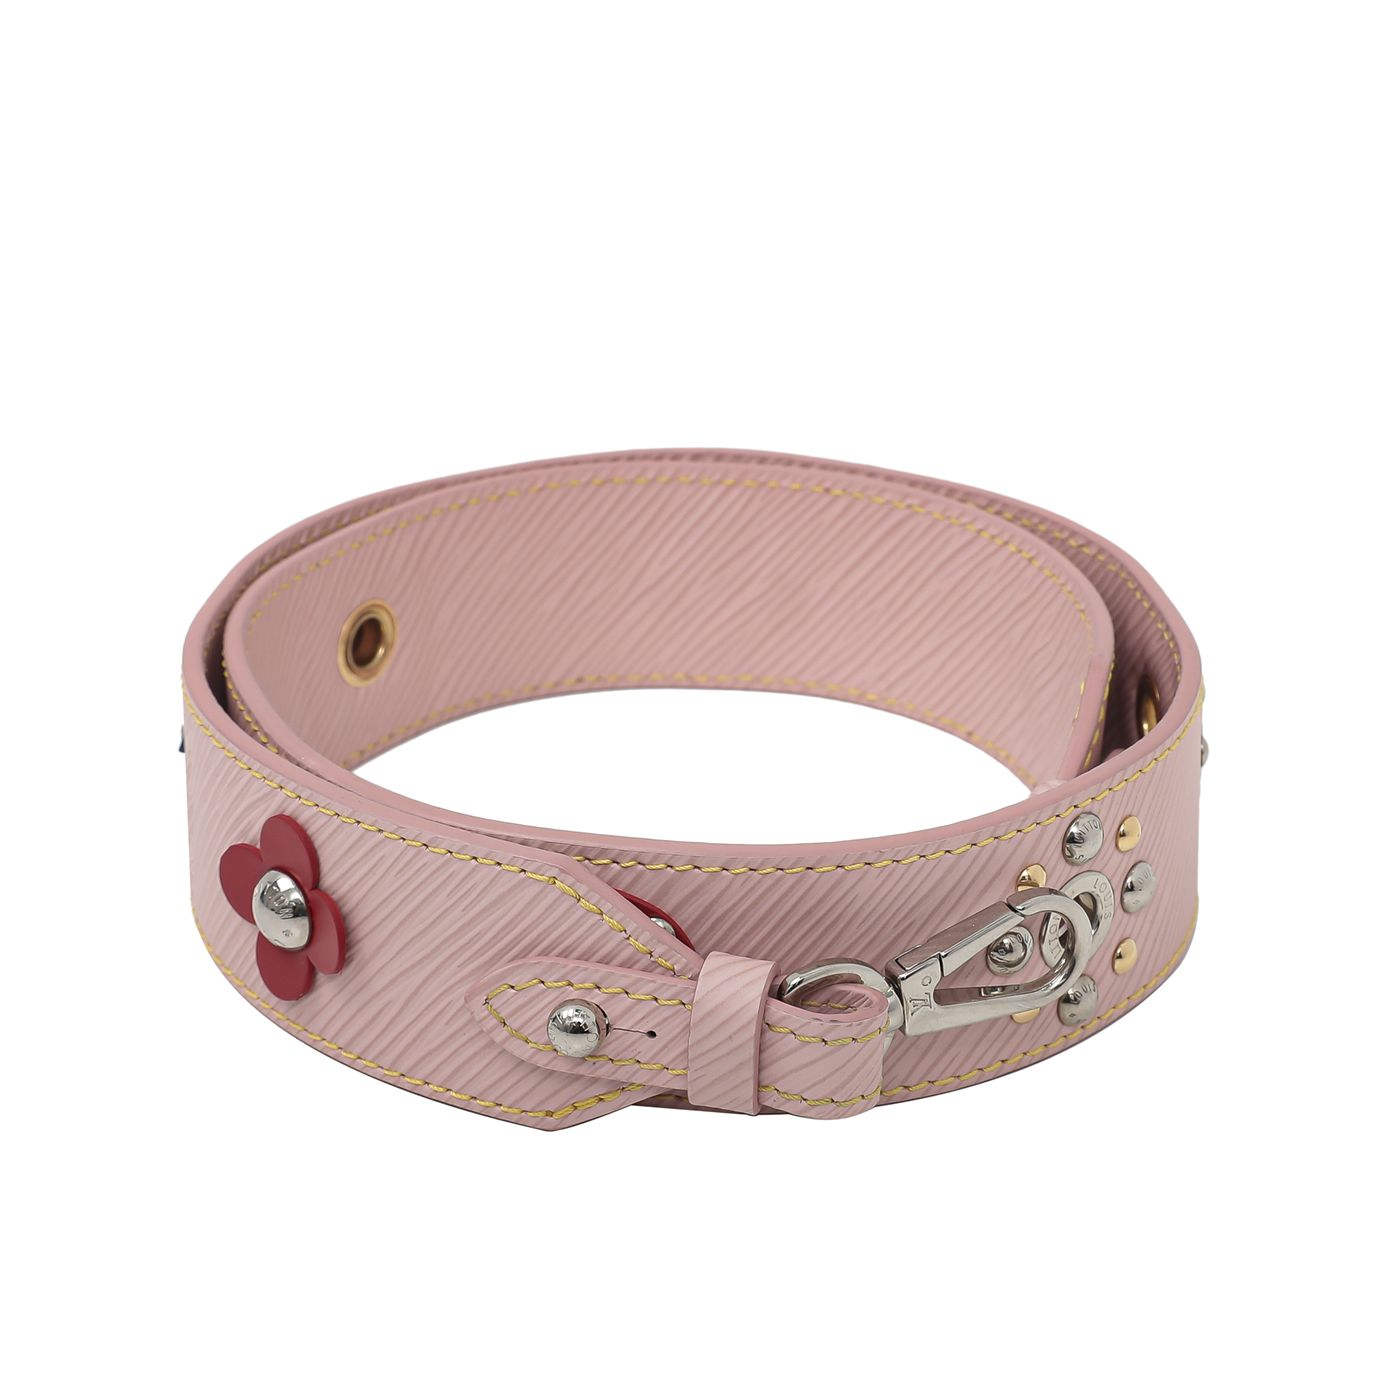 Louis Vuitton Pink Mechanical Flower Bandouliere Strap